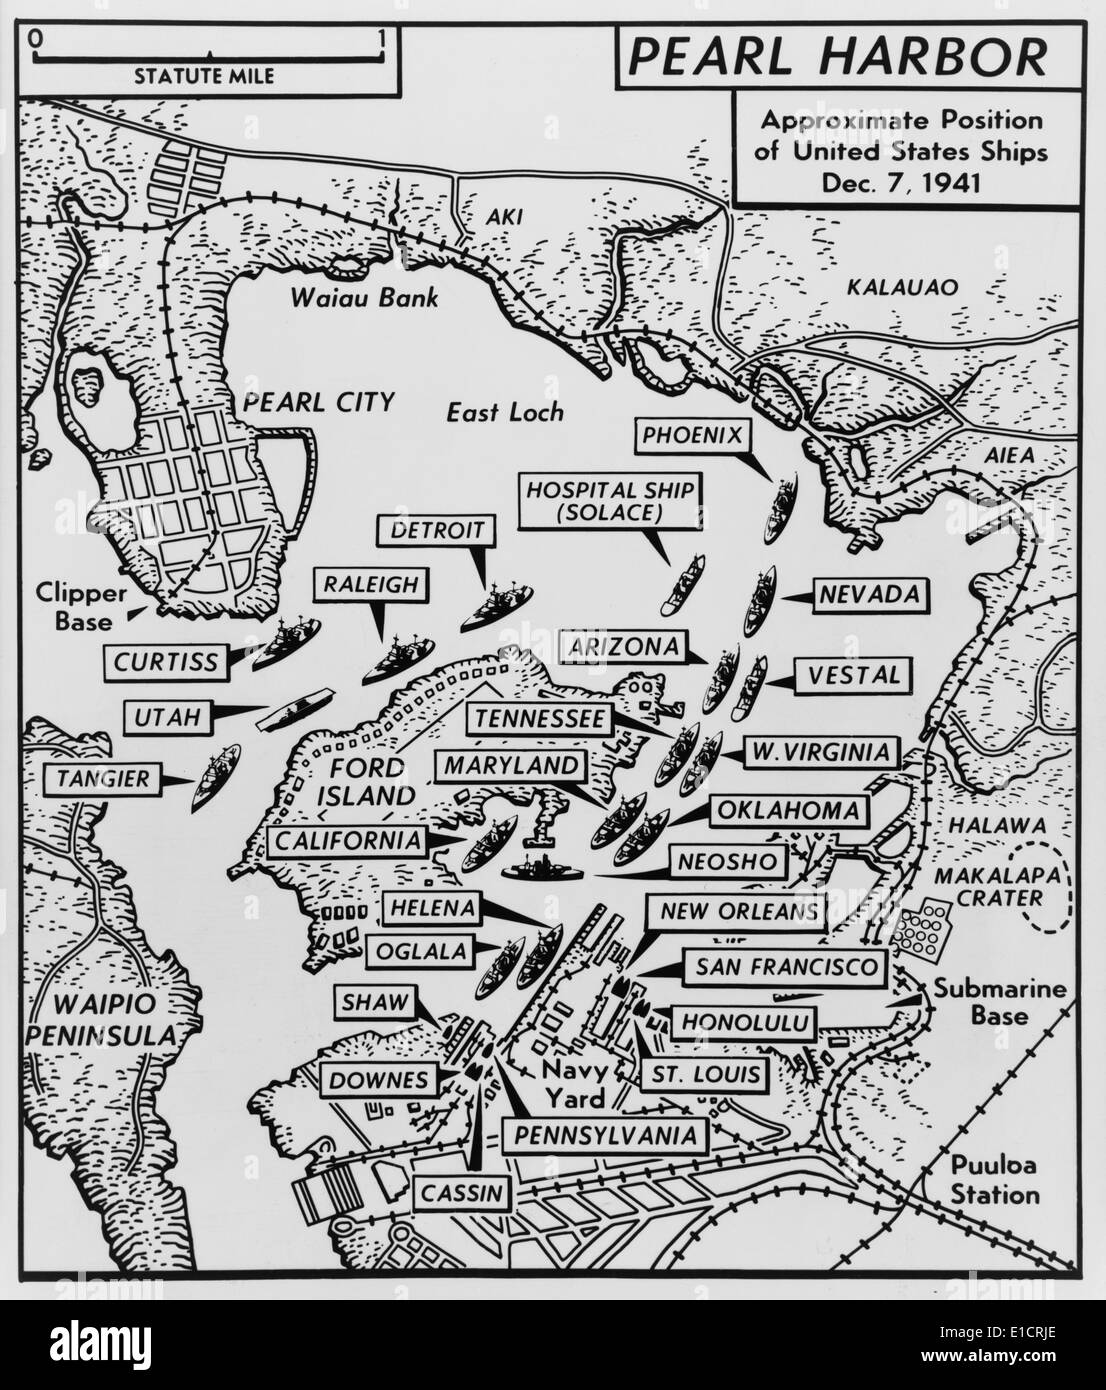 Map Of Pearl Harbor With Location Of Ships Just Prior To